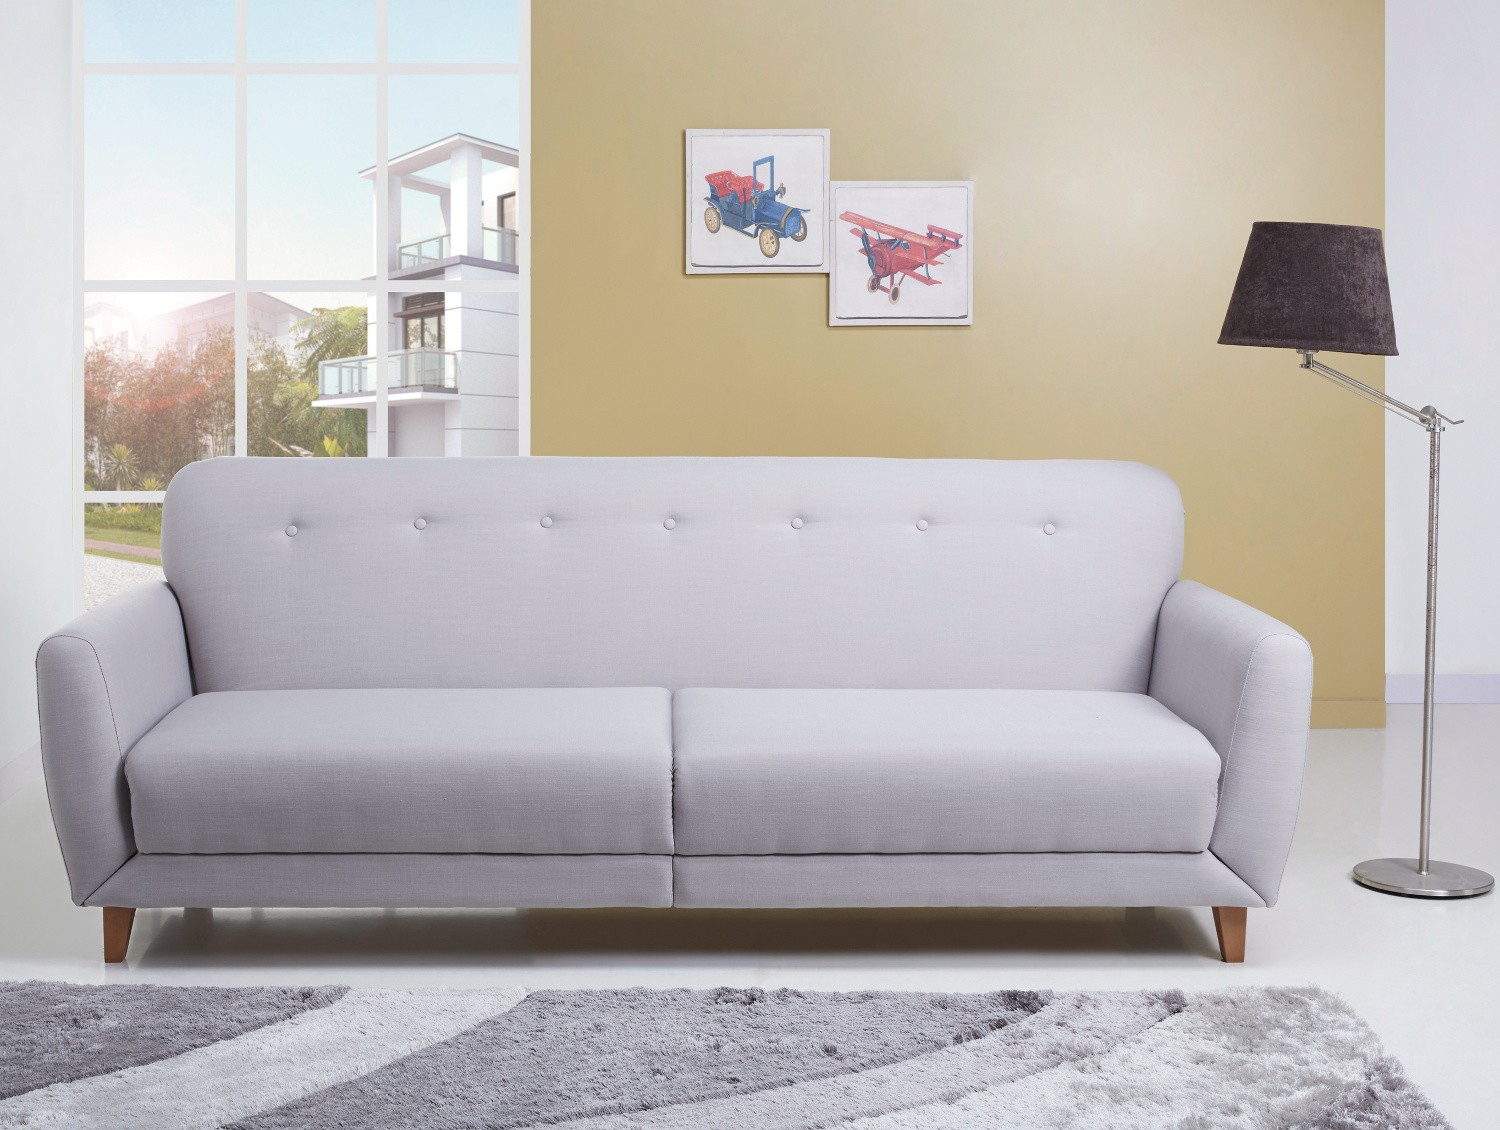 revista muebles mobiliario de dise o On sofa cama 2016